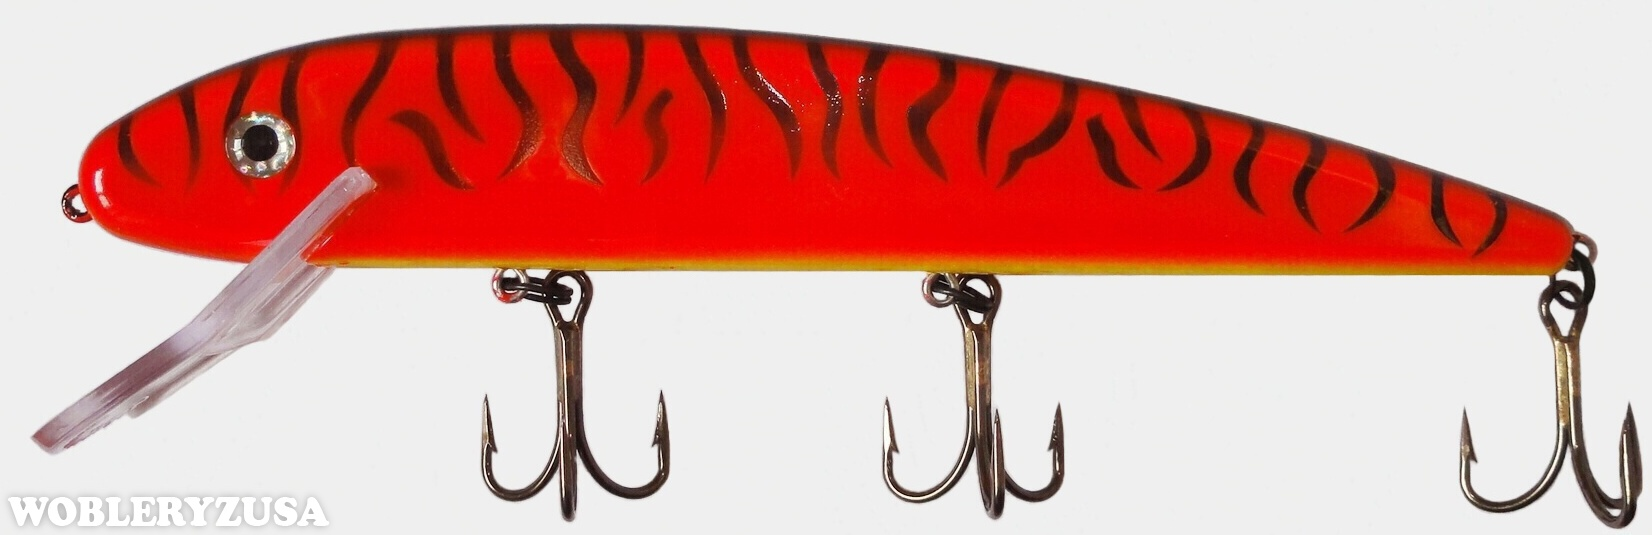 Wobler GRANDMA LURE 23 cm - Hot Orange Tiger